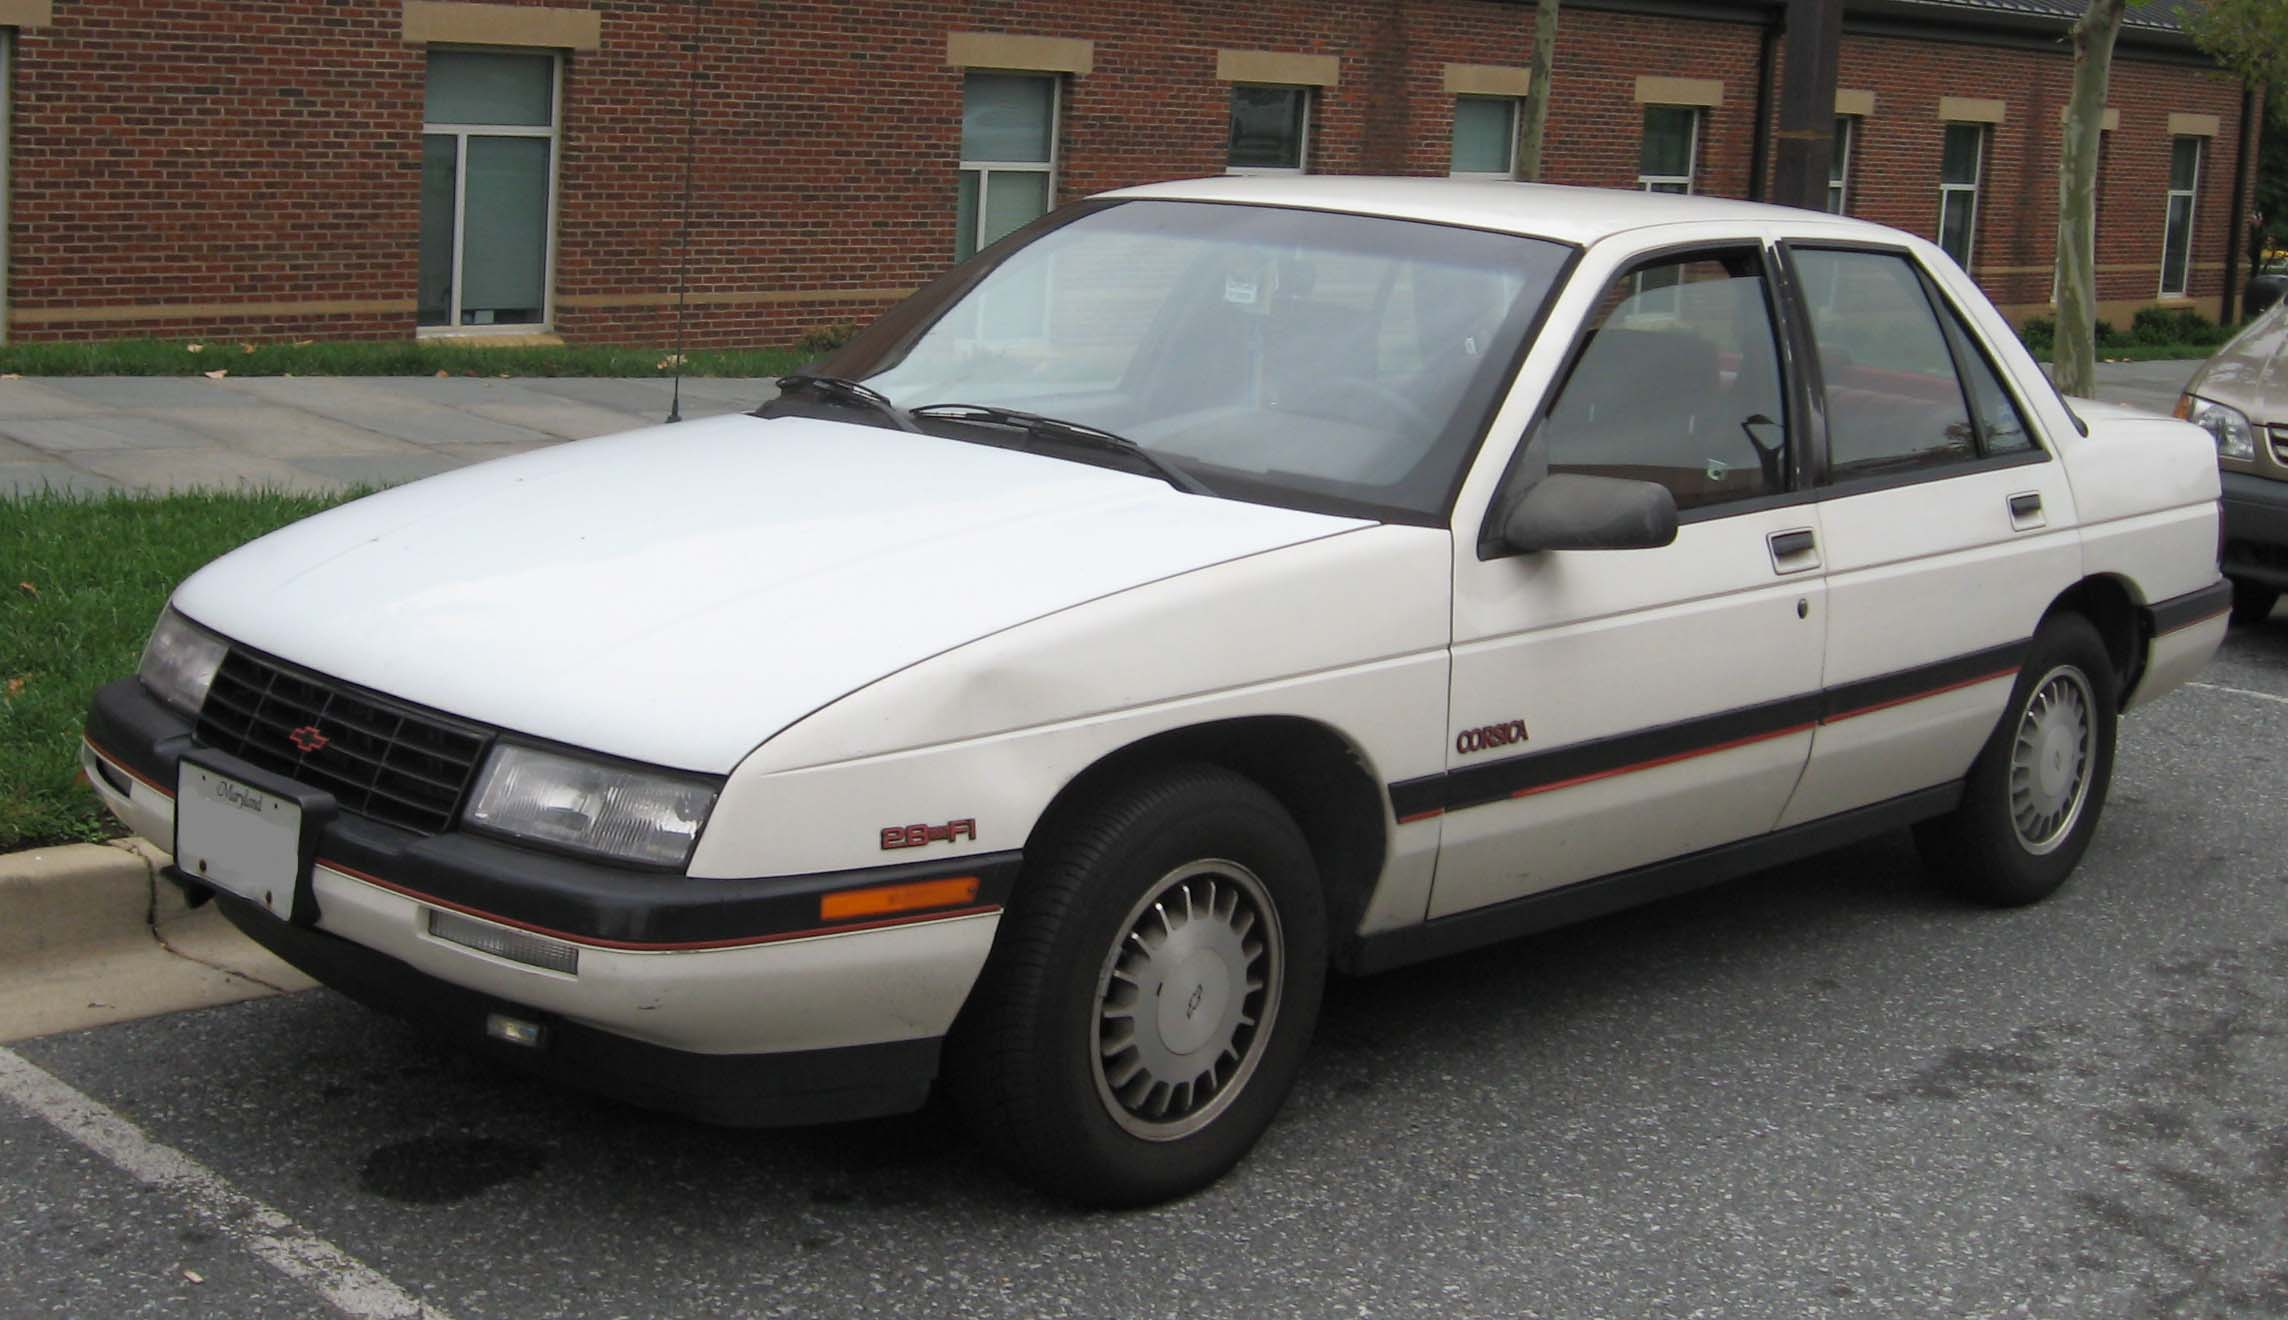 1990 Chevrolet Corsica for sale in Center Point,IA - 3629